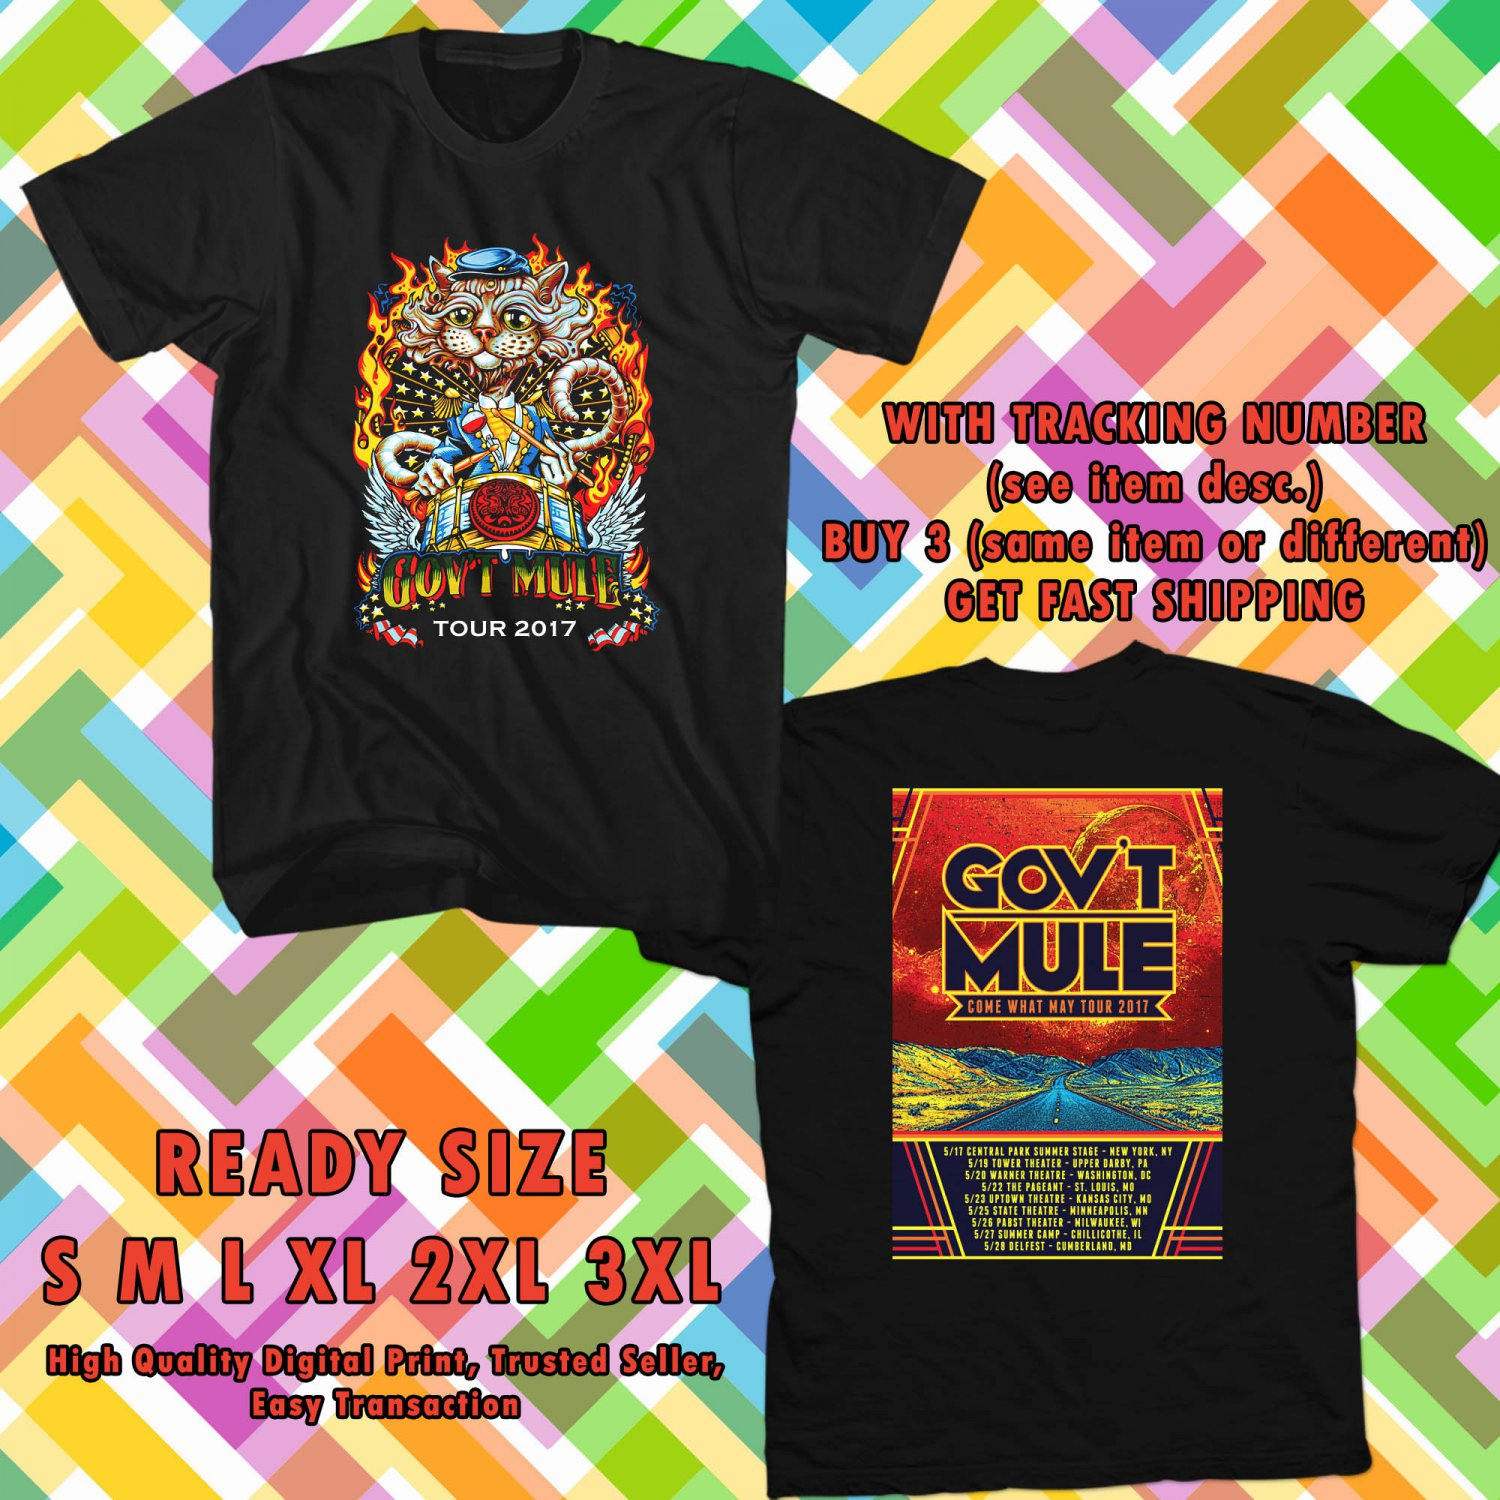 NEW GOVT MULE COME WHAT MAY TOUR 2017 BLACK TEE W DATES DMTR 554